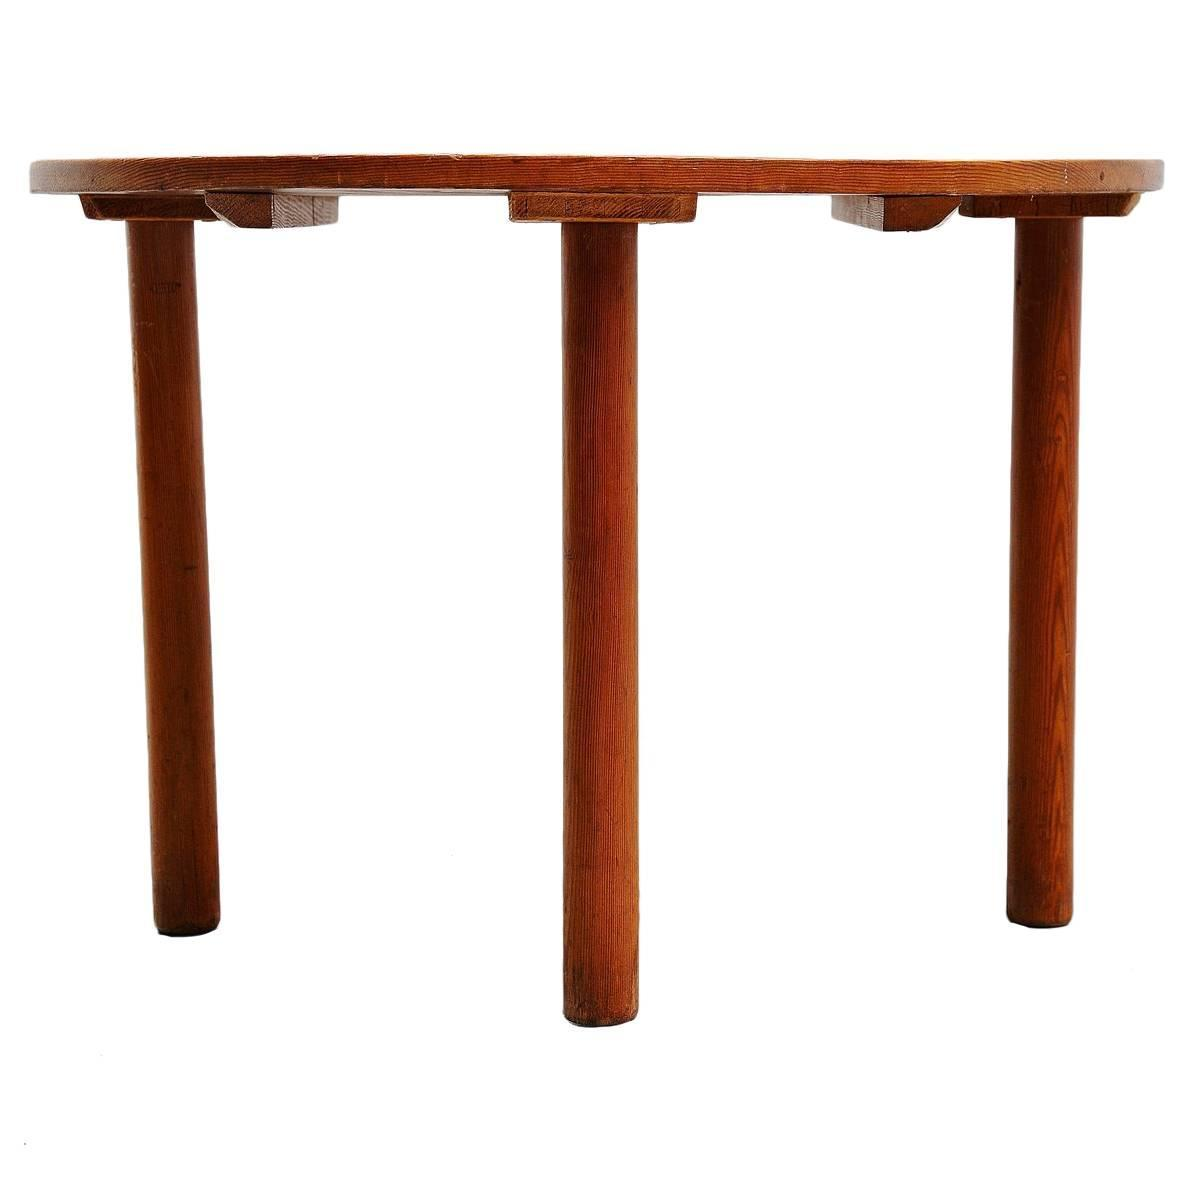 Gerrit rietveld chair for sale - Gerrit Rietveld Deal Coffee Table Circa 1930